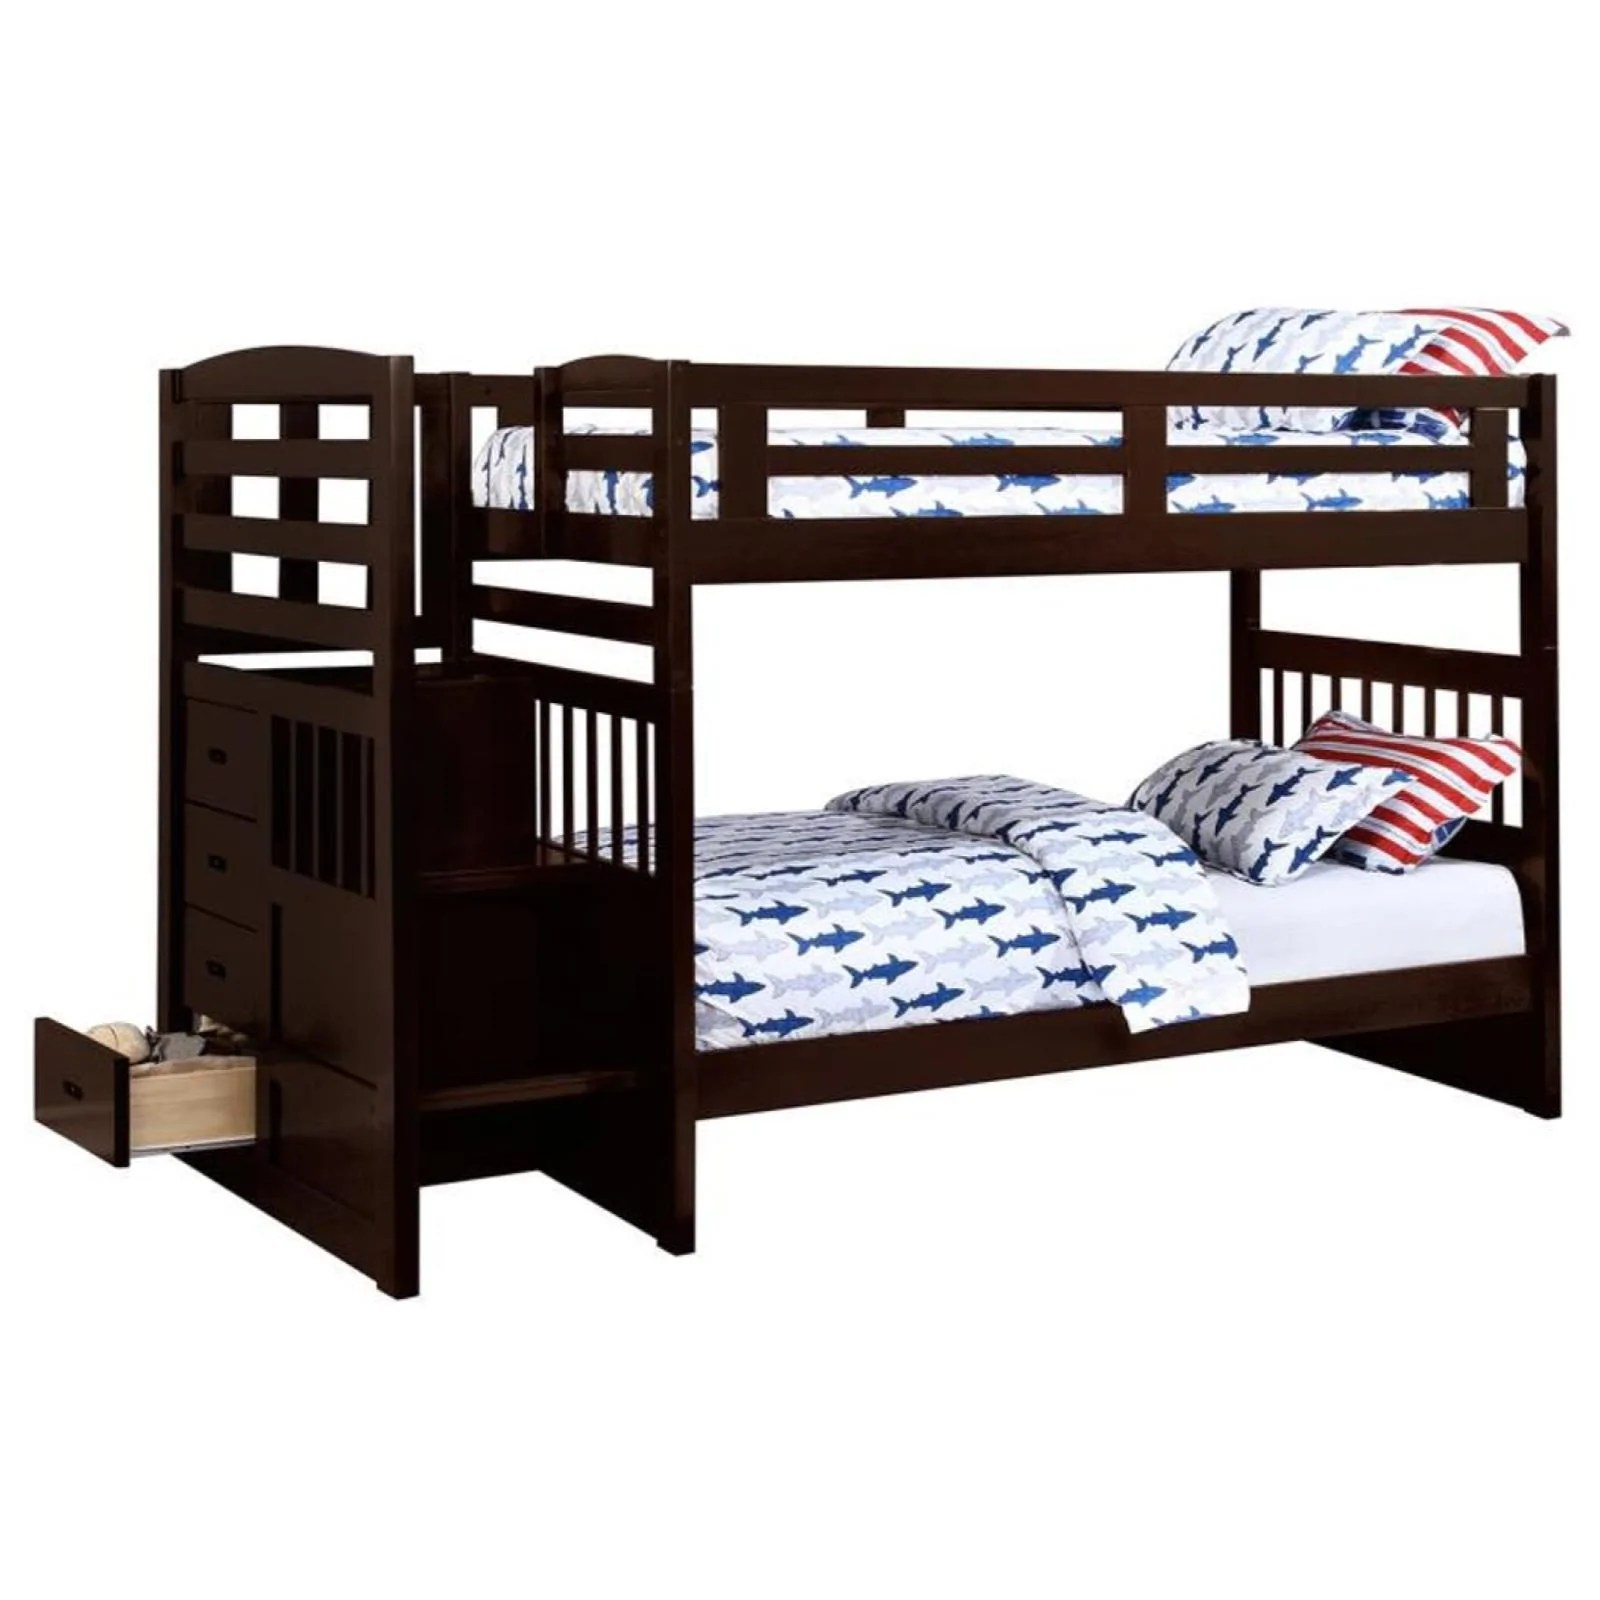 Dublin Twin Twin Bunk Bed With Staircase Adams Furniture